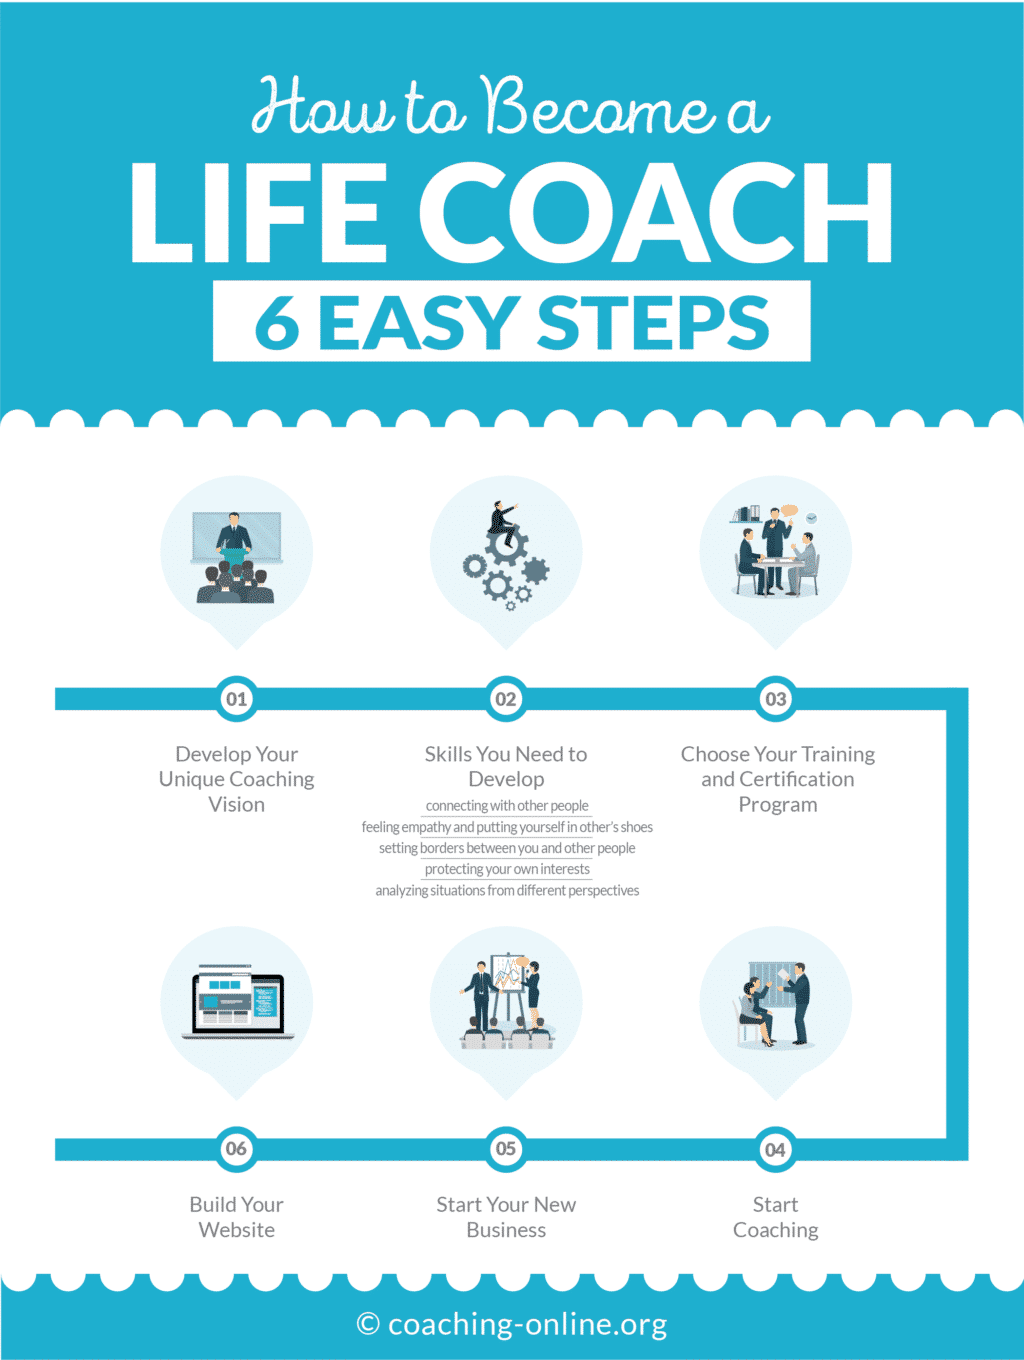 How To Become a Life Coach – 6 Easy Steps [in 2019]